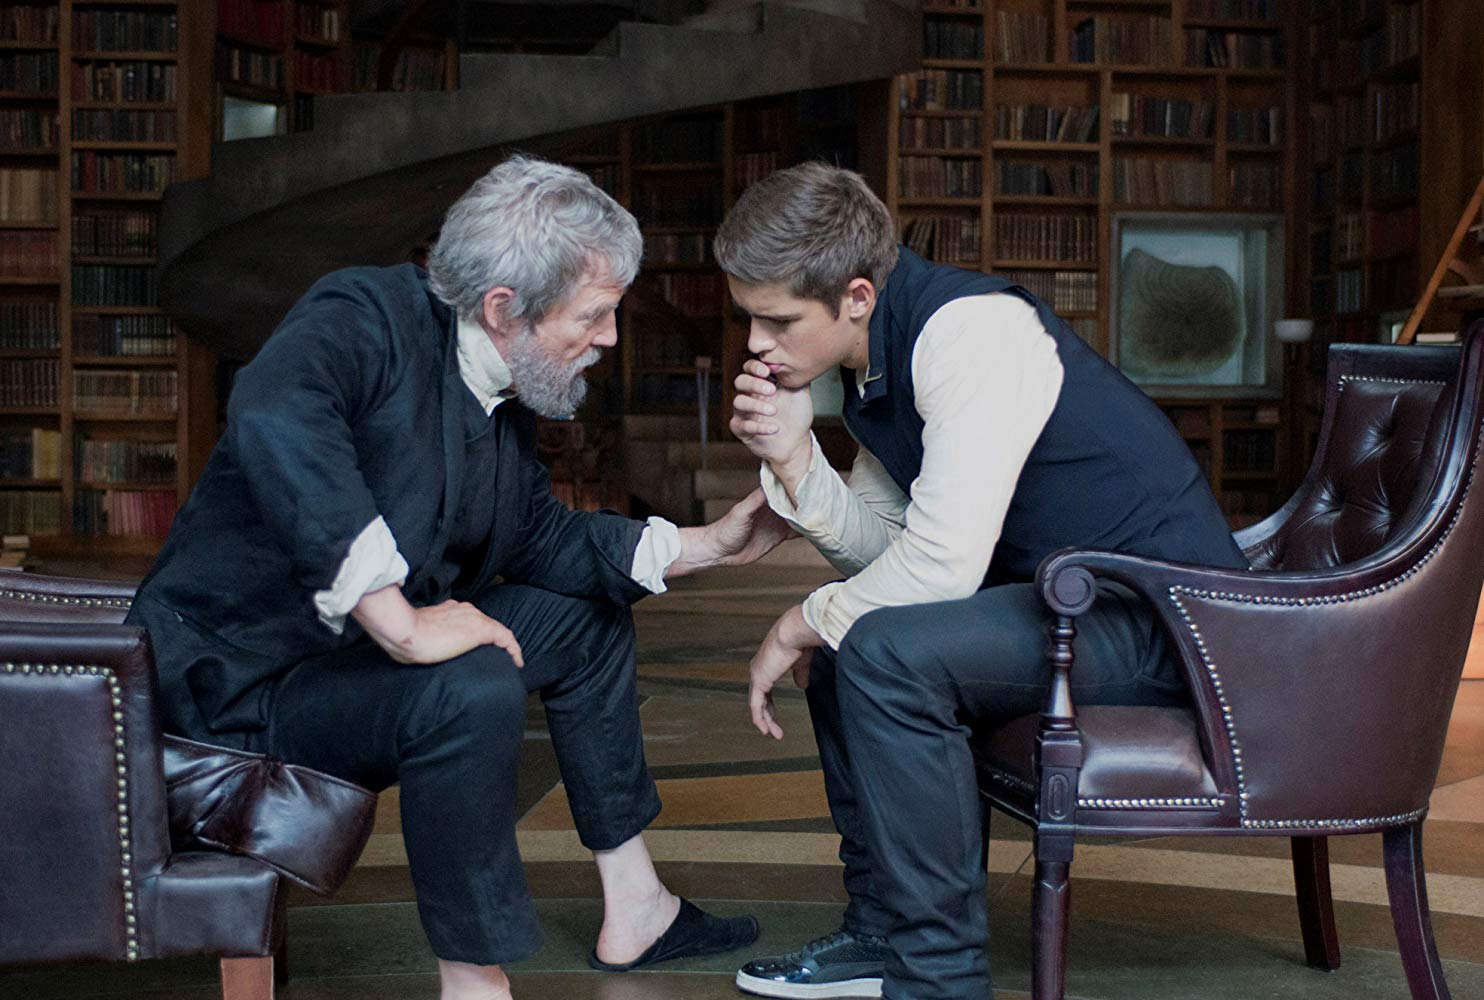 The Giver (Jeff Bridges) instructs Jonas (Brenton Thwaites) in the ways of the past in The Giver (2014)